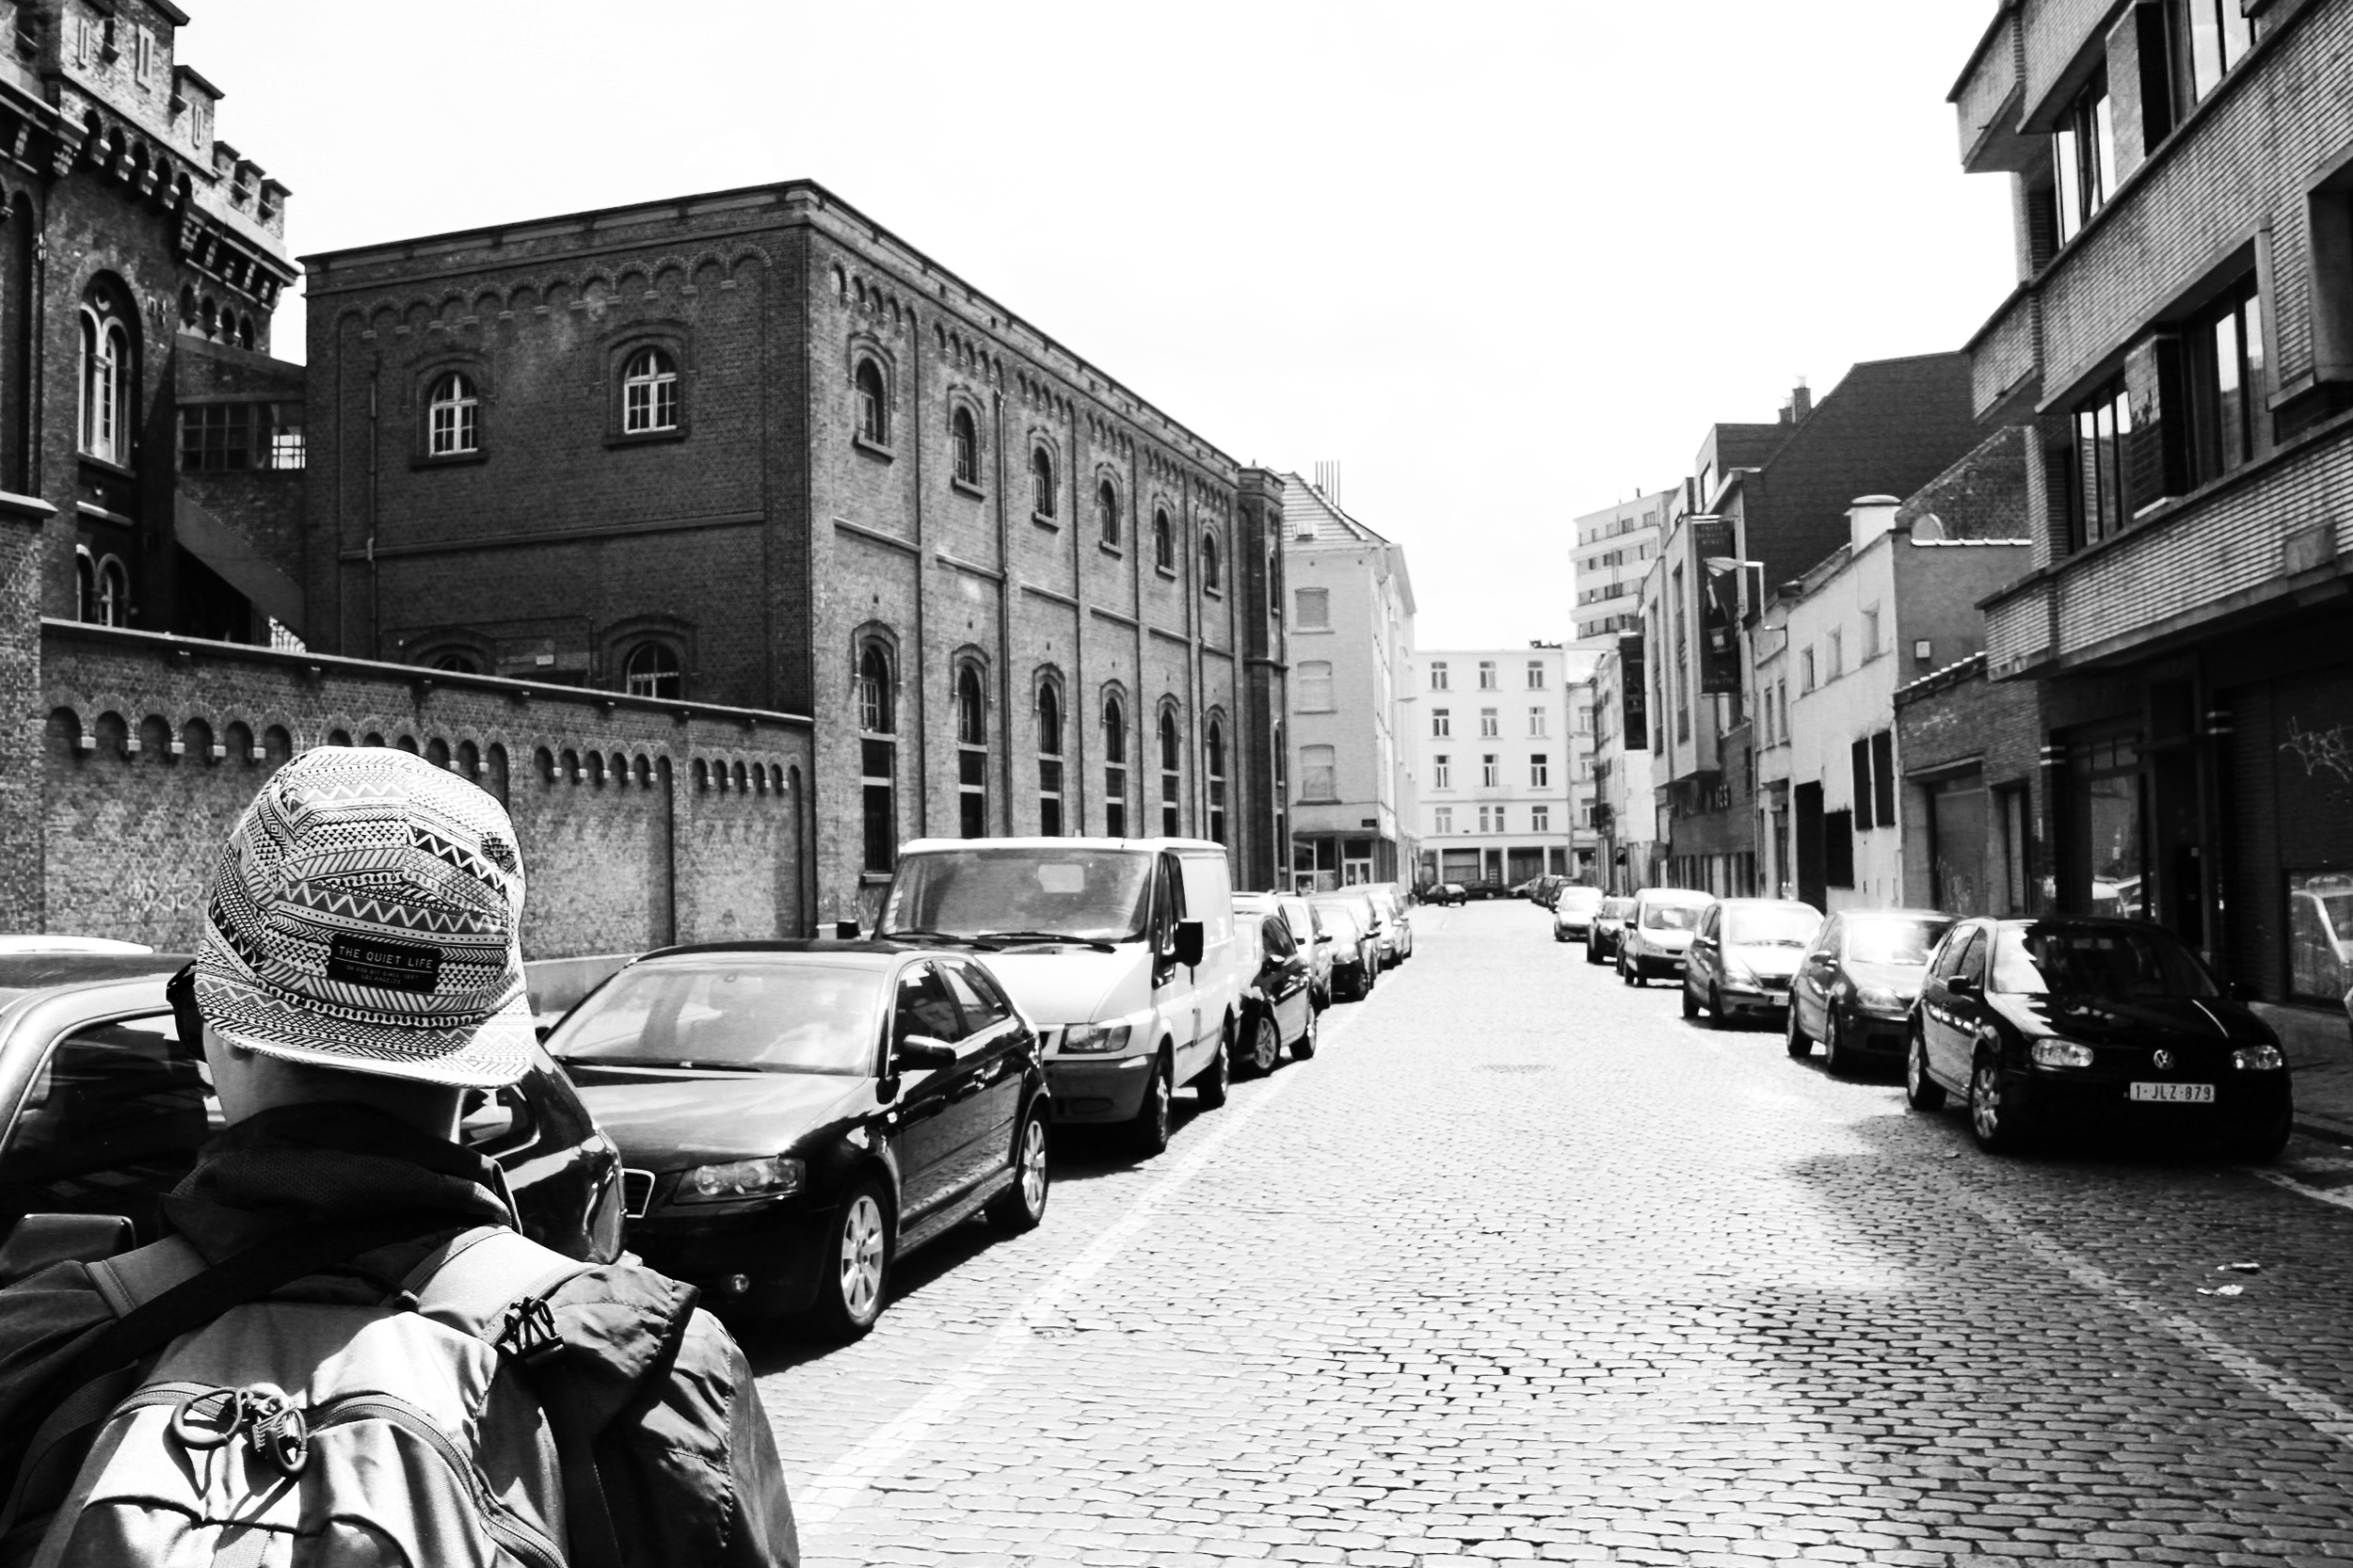 The streets of Brussels. Photograph by Lauren Martin